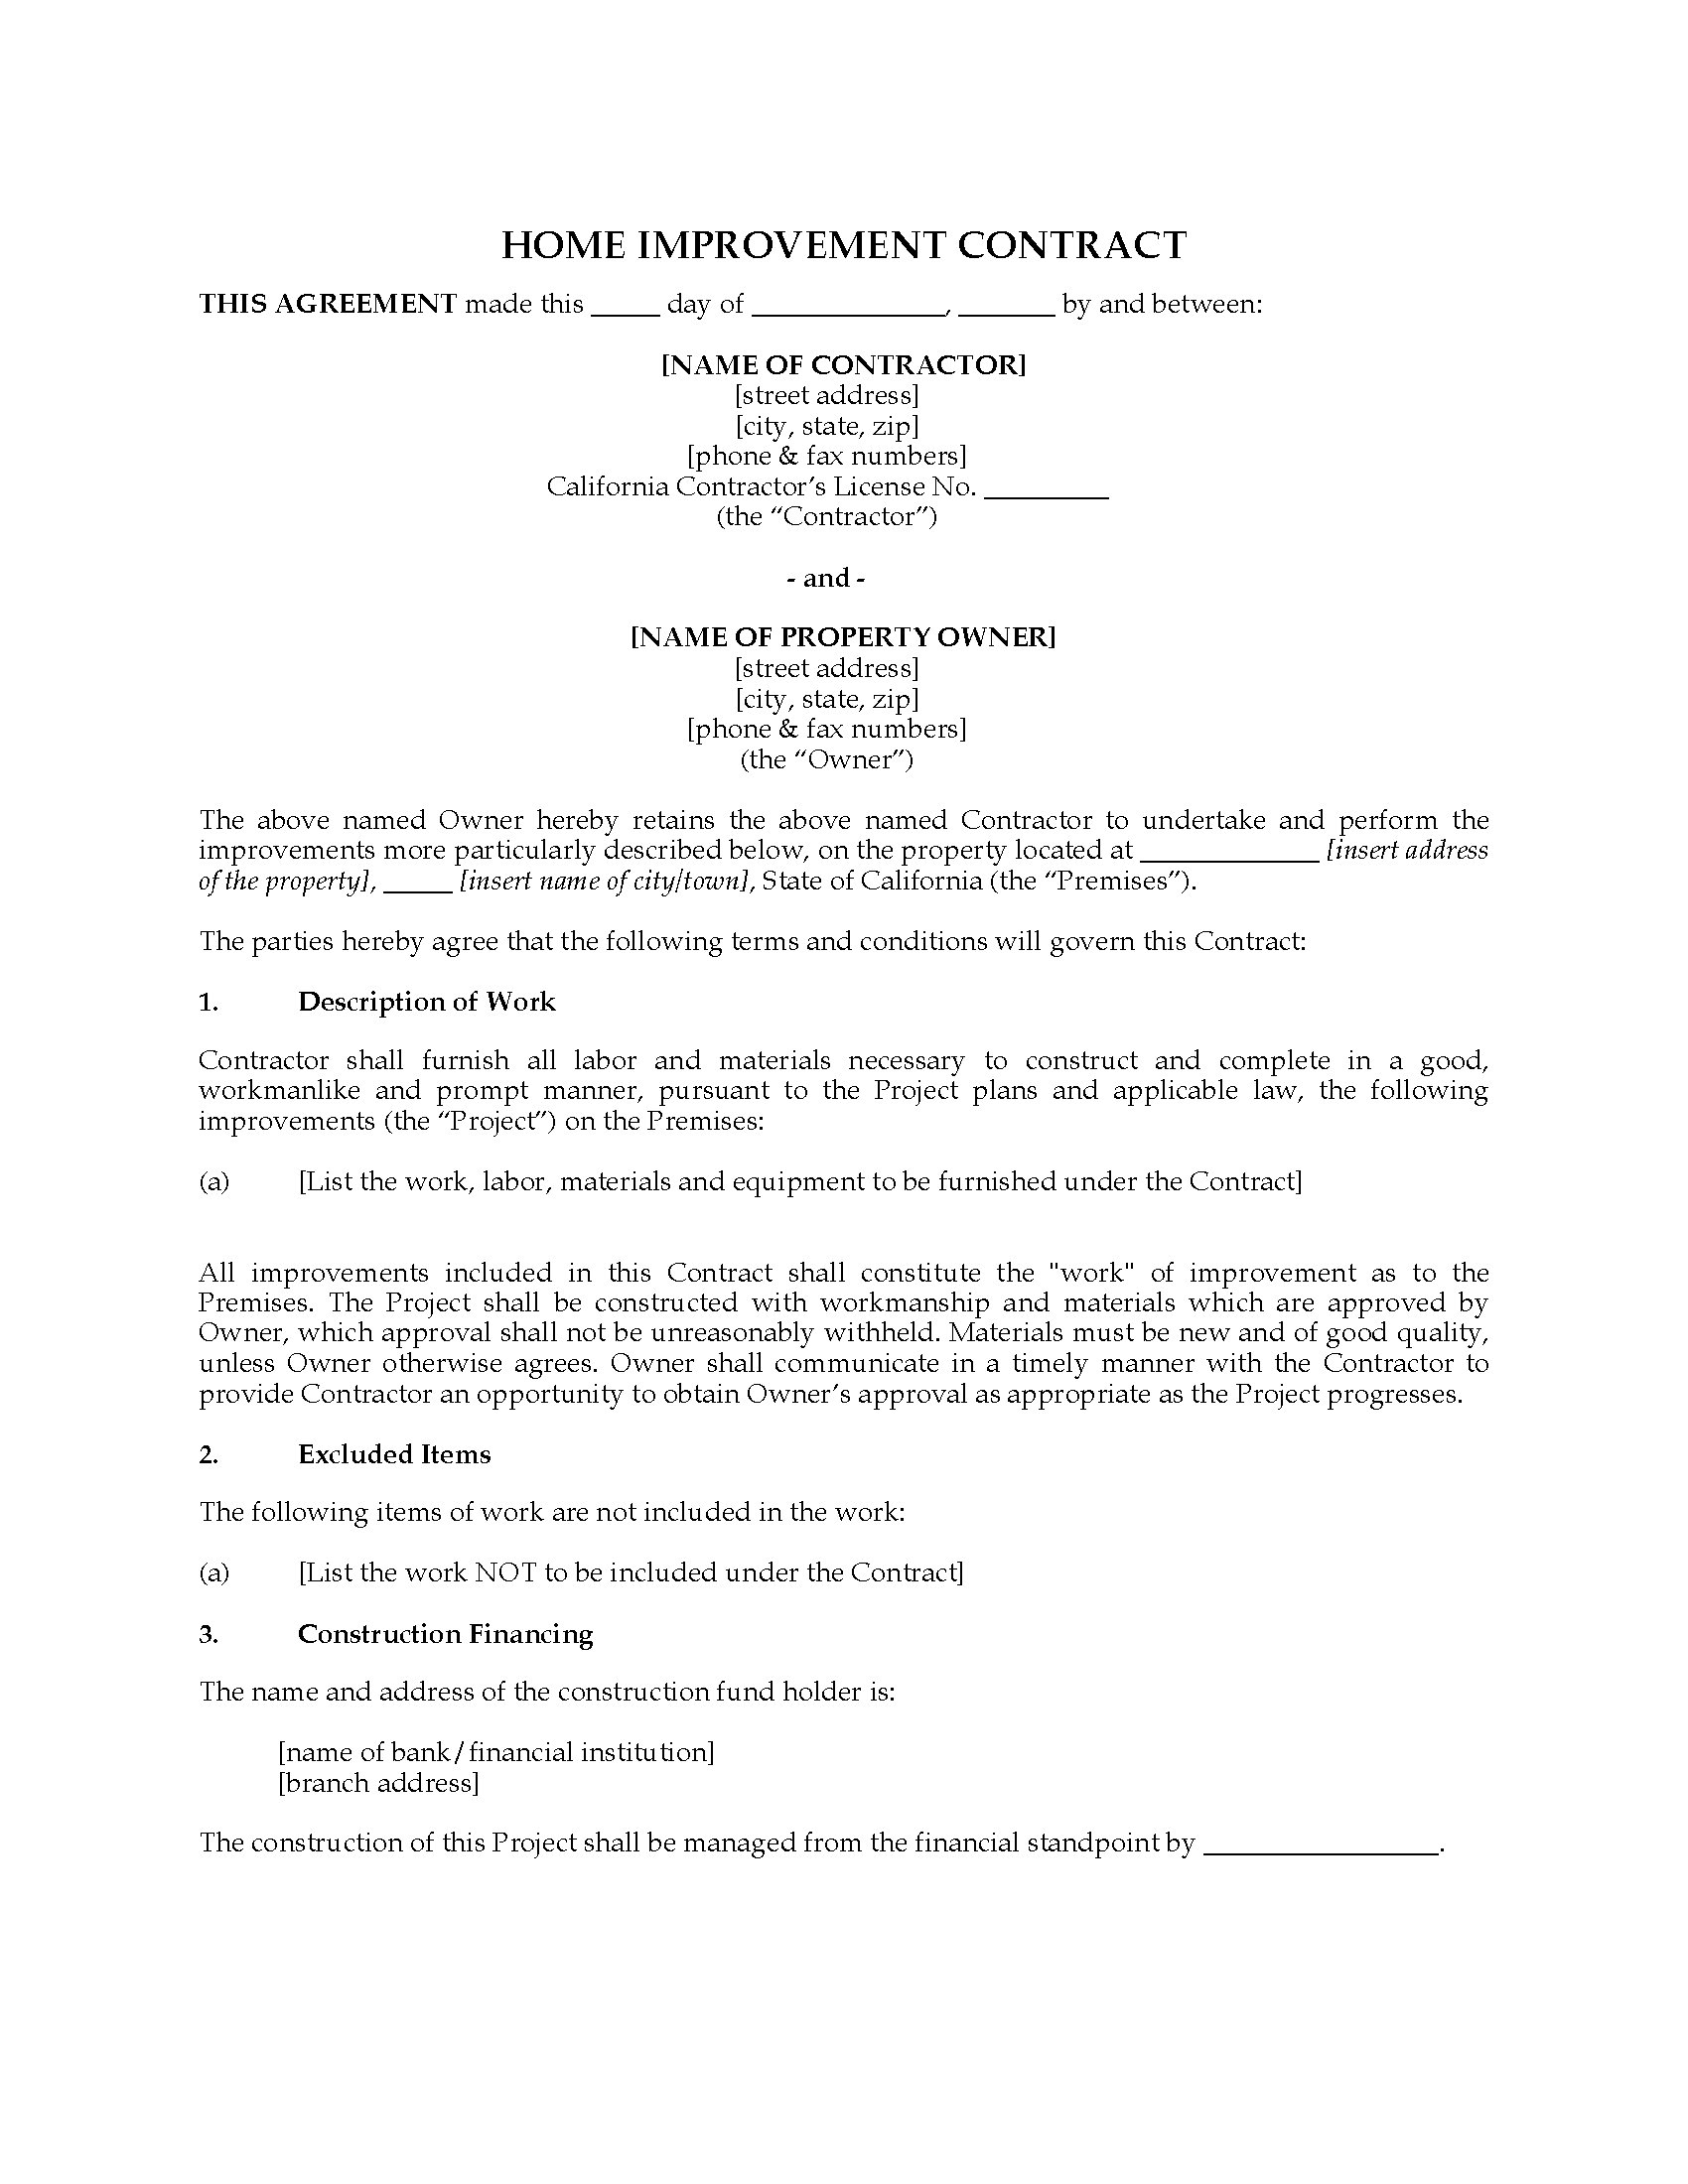 California home improvement contract legal forms and for Home construction contract tips